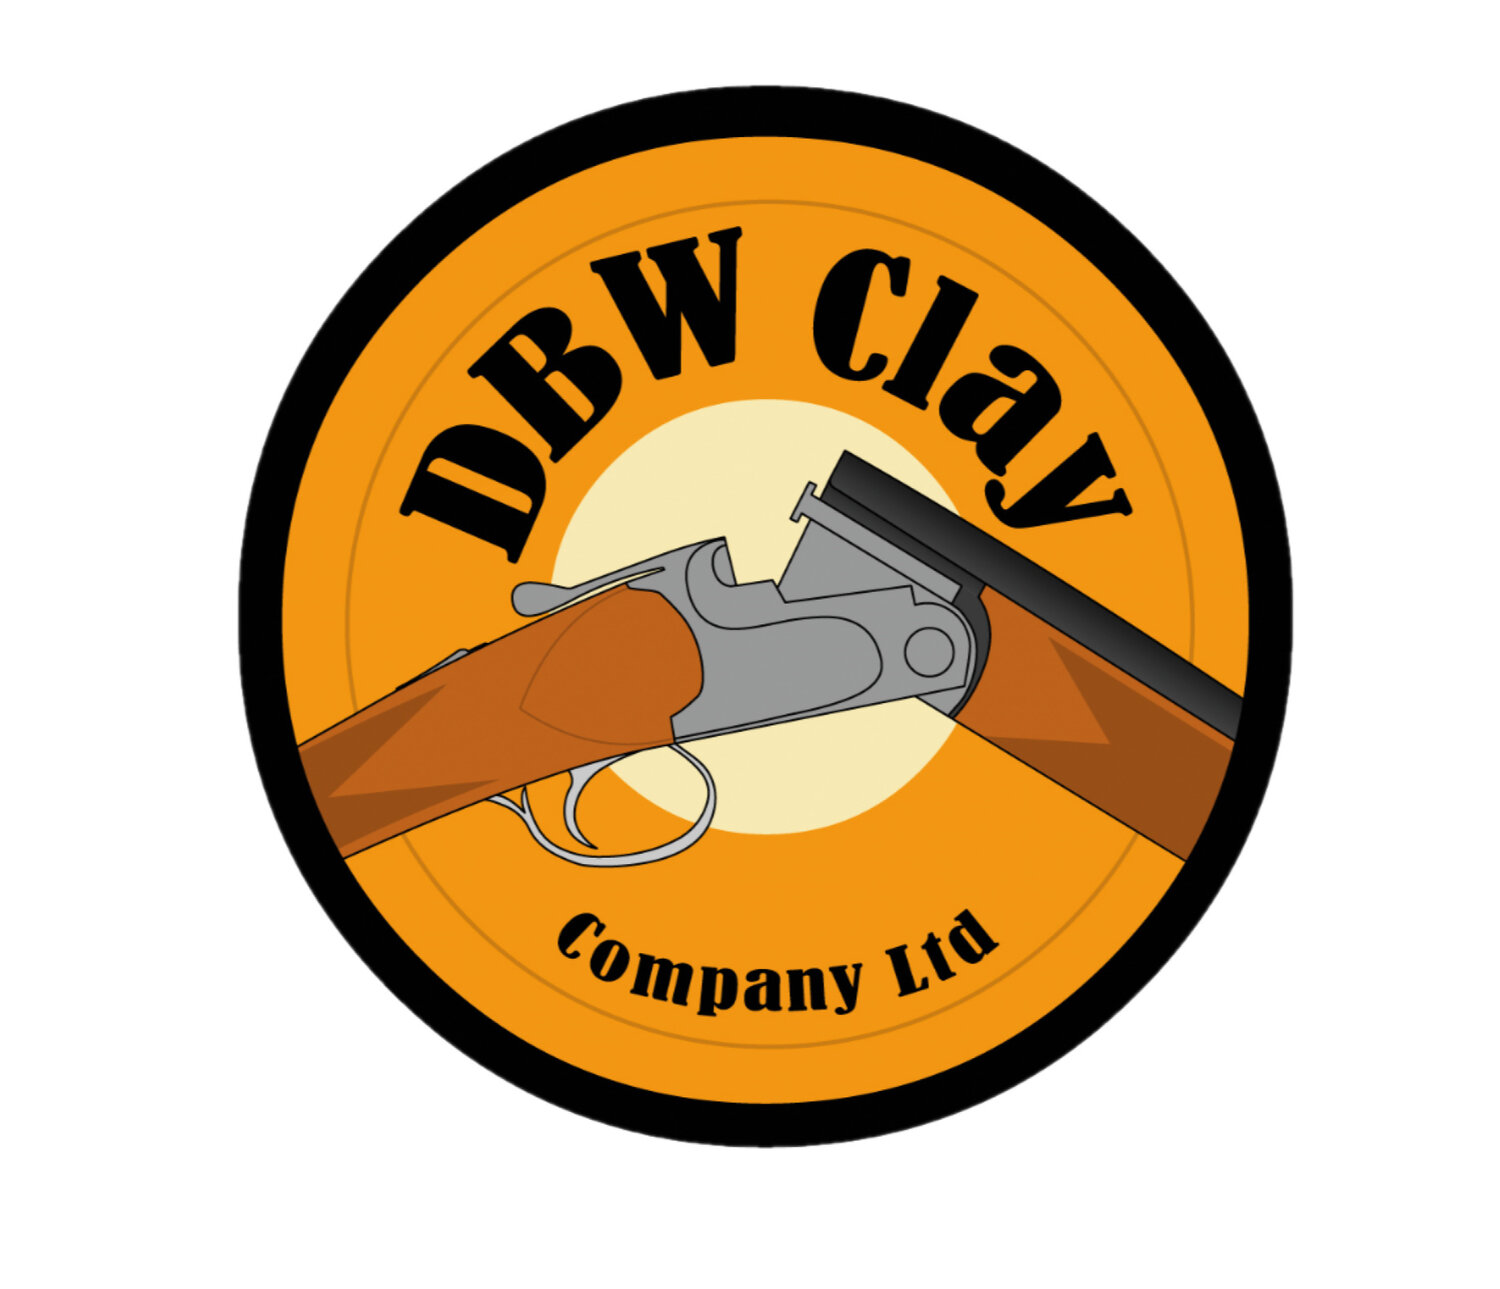 DBW Clay Company ltd.